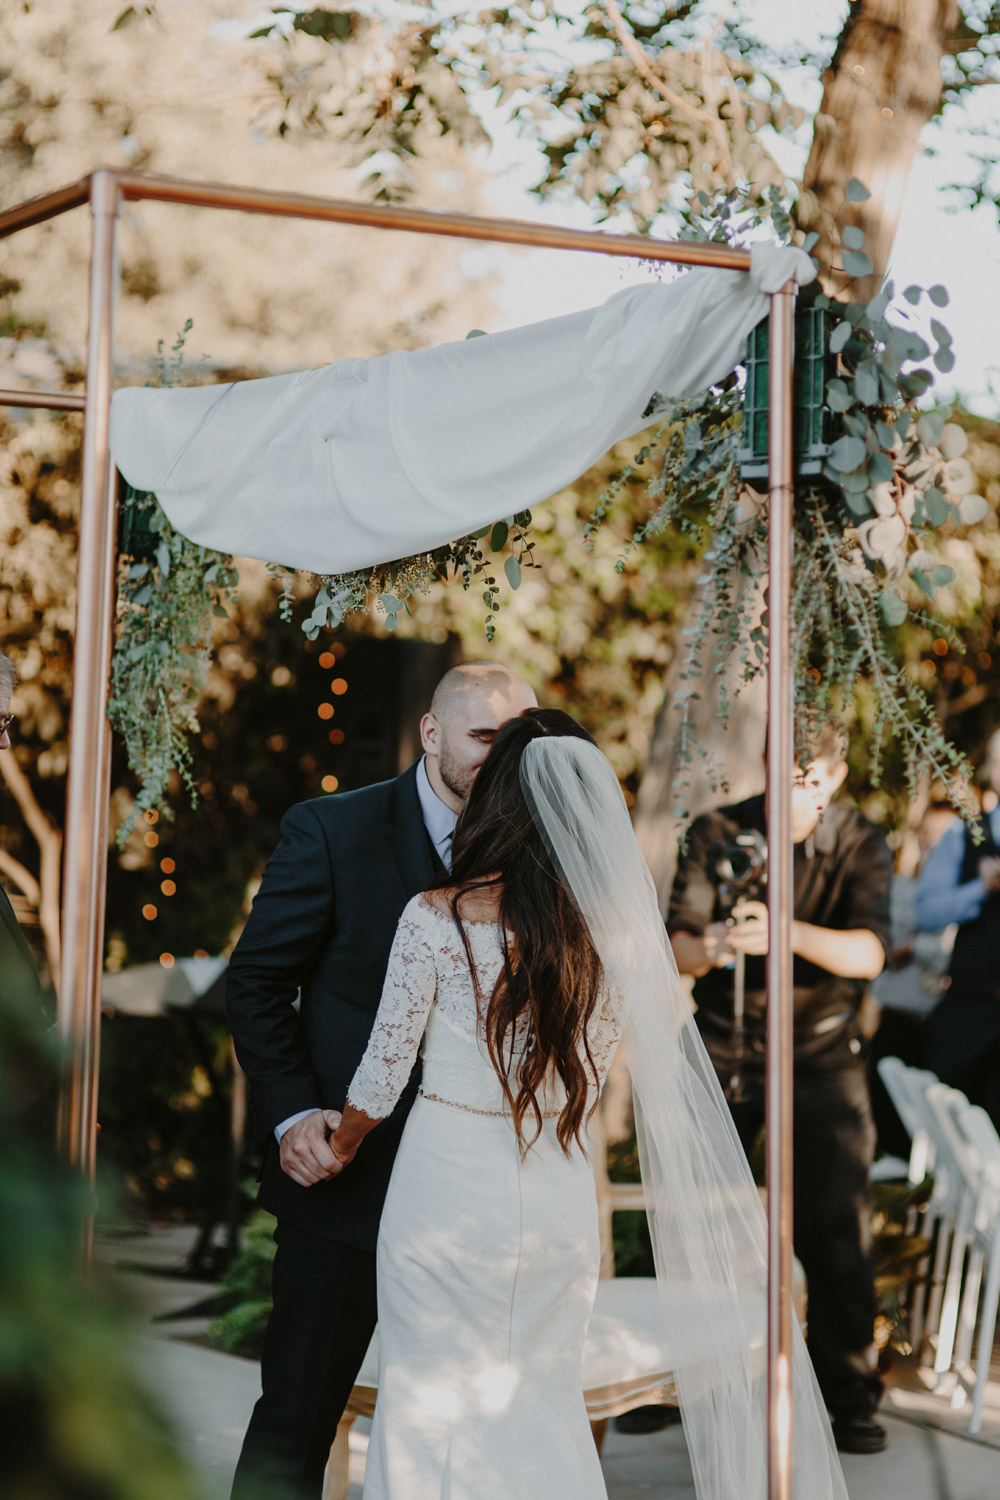 Greg-Petersen-San-Francisco-Wedding-Photographer-1-58.jpg